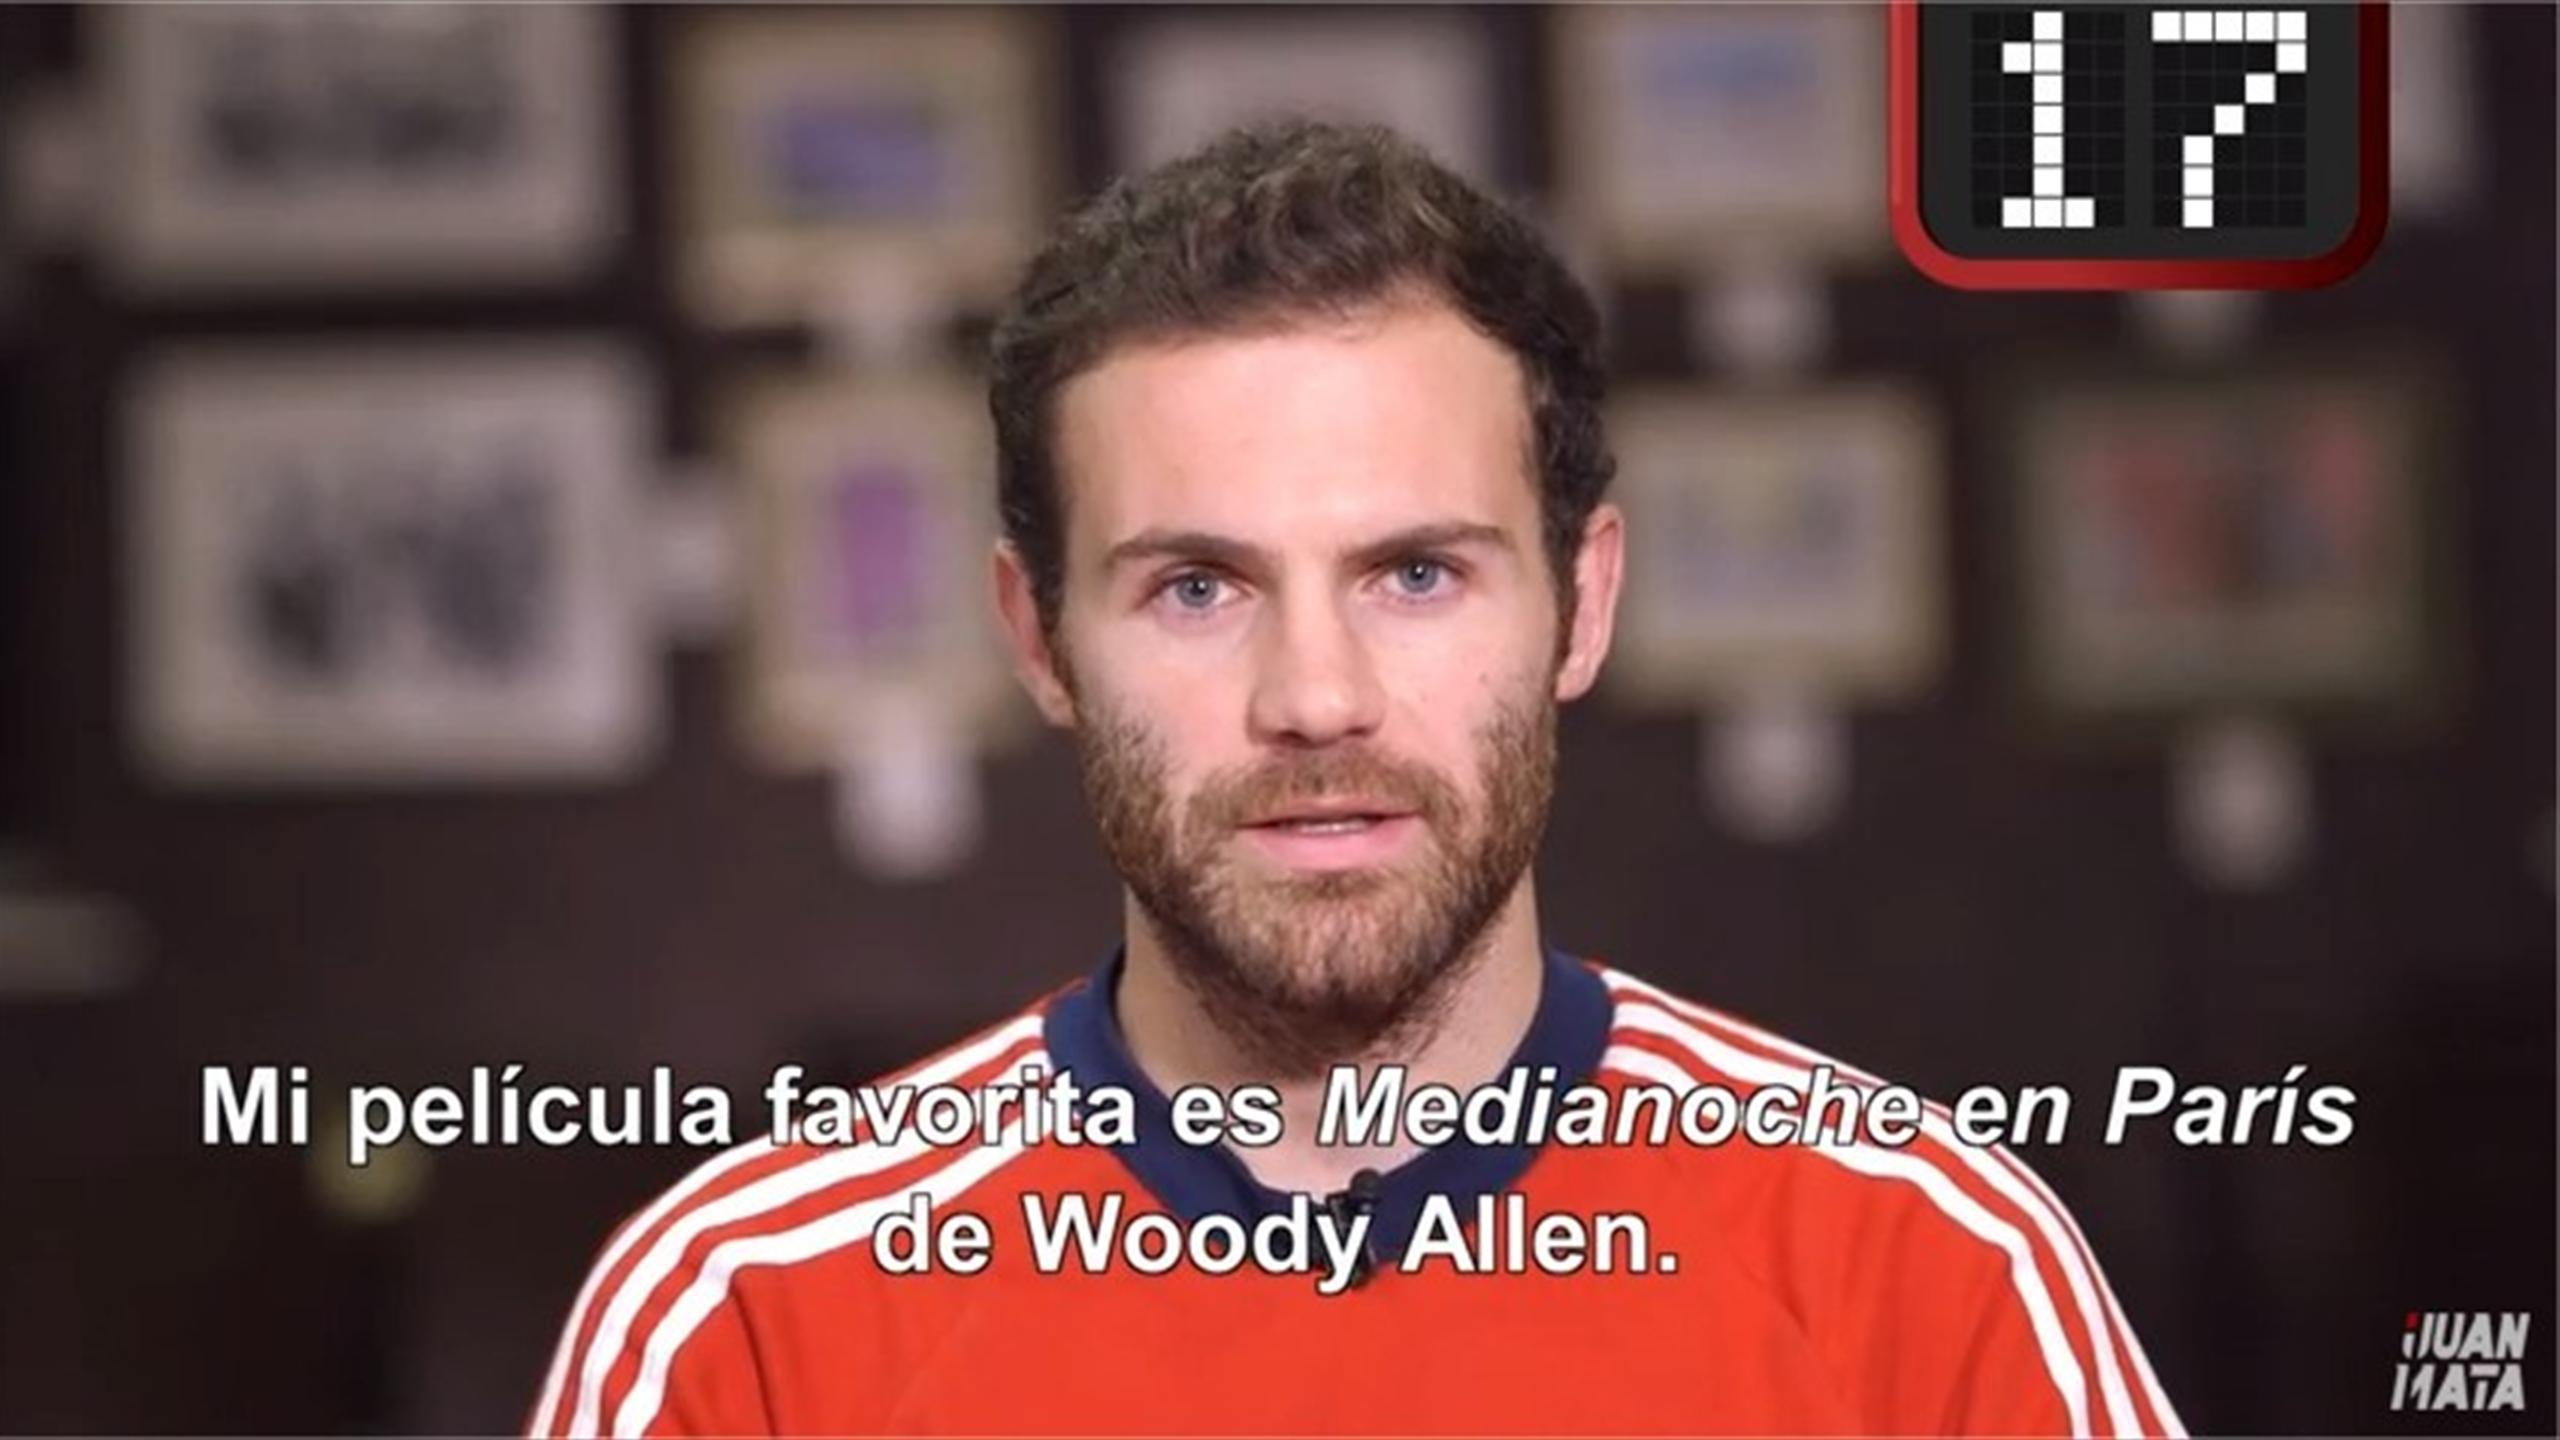 Manchester United's Juan Mata reveals facts for his Youtube channel